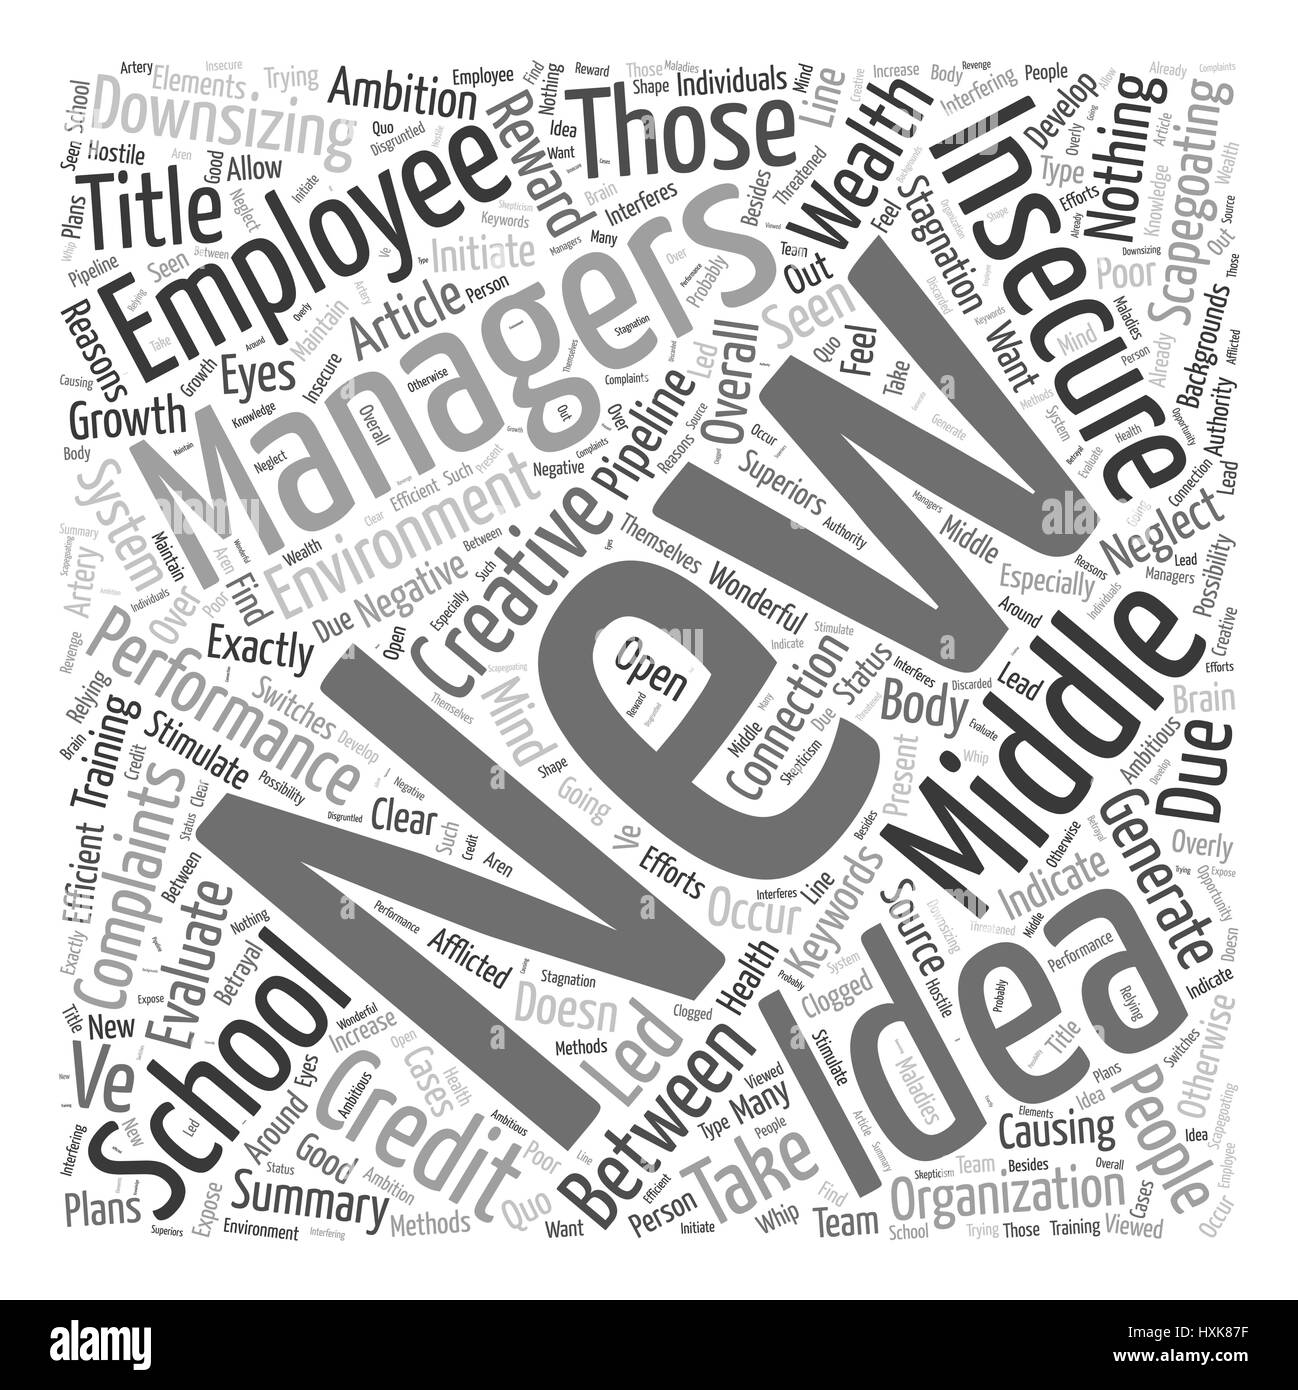 The Connection between the New Insecurity in Middle Management and Complaints of School Performance Word Cloud Concept - Stock Vector